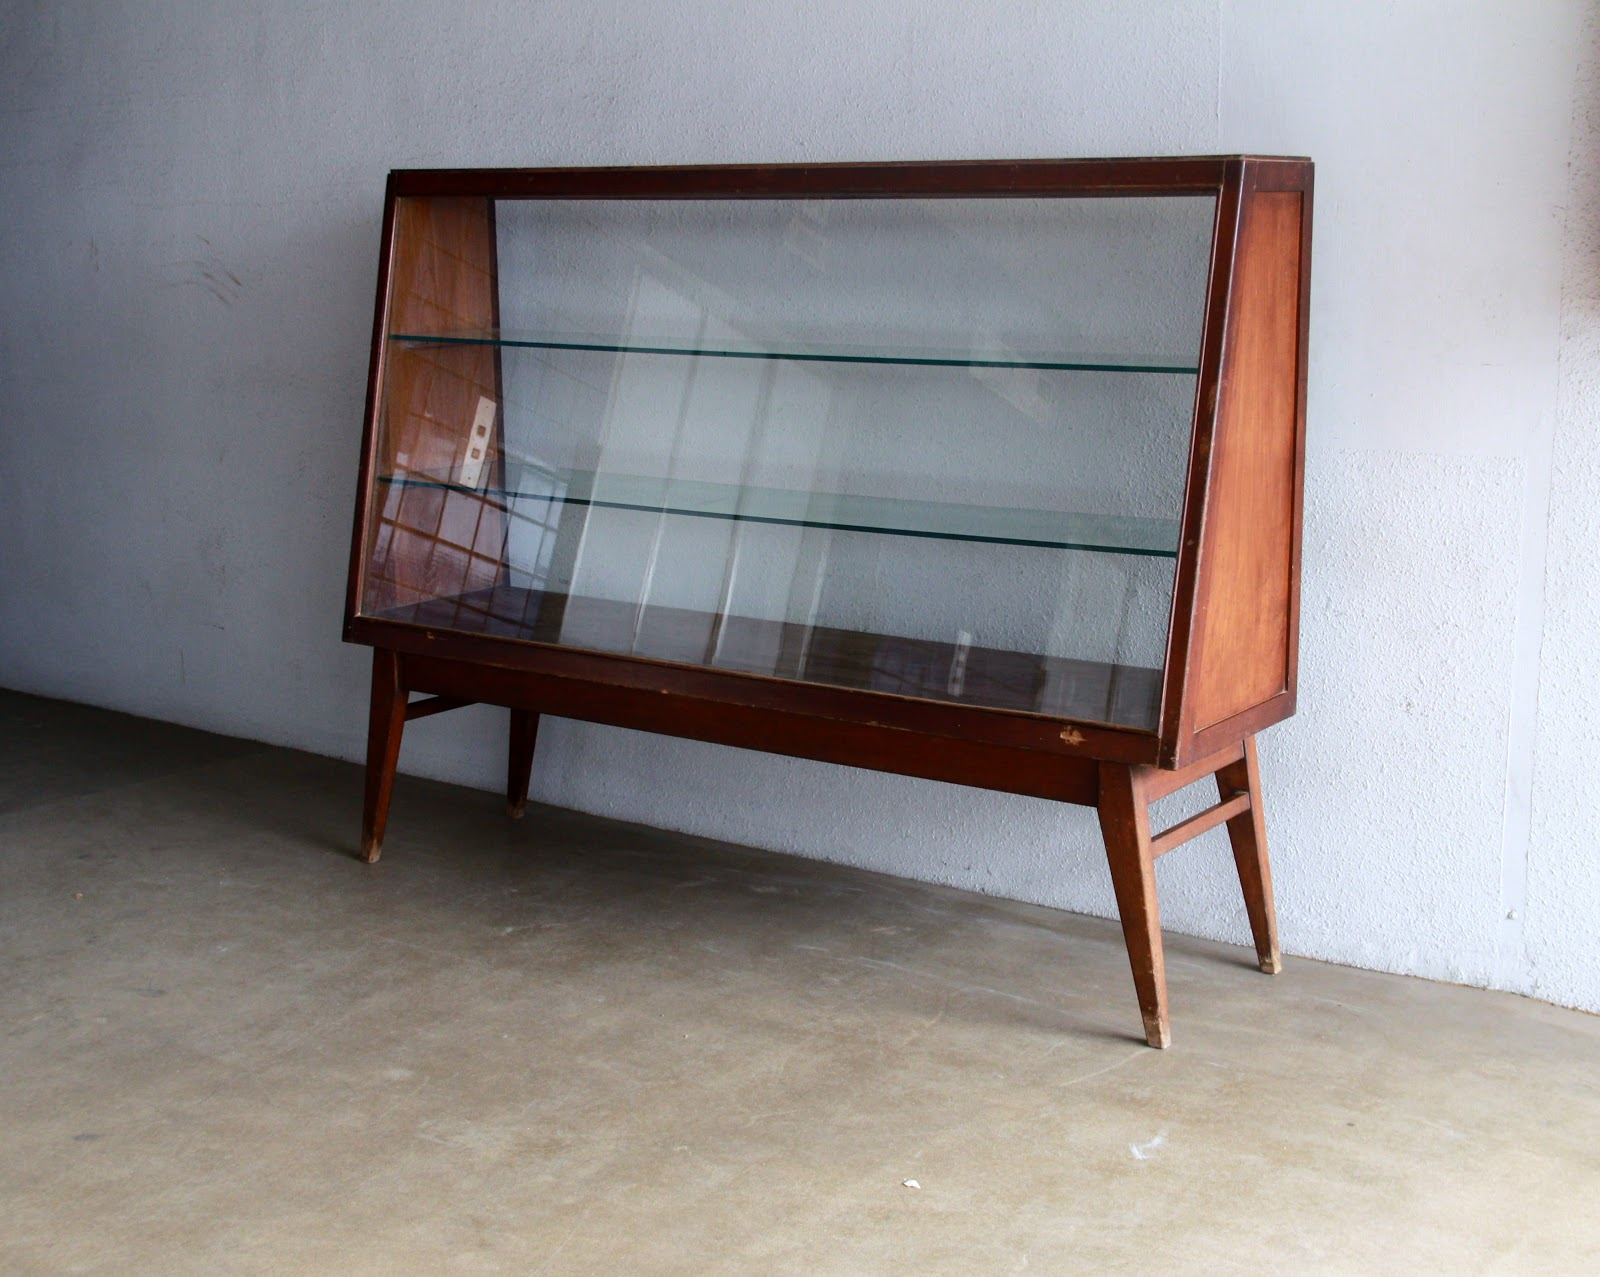 466eb16d0525 VINTAGE SHOWCASES AND DISPLAY CABINETS